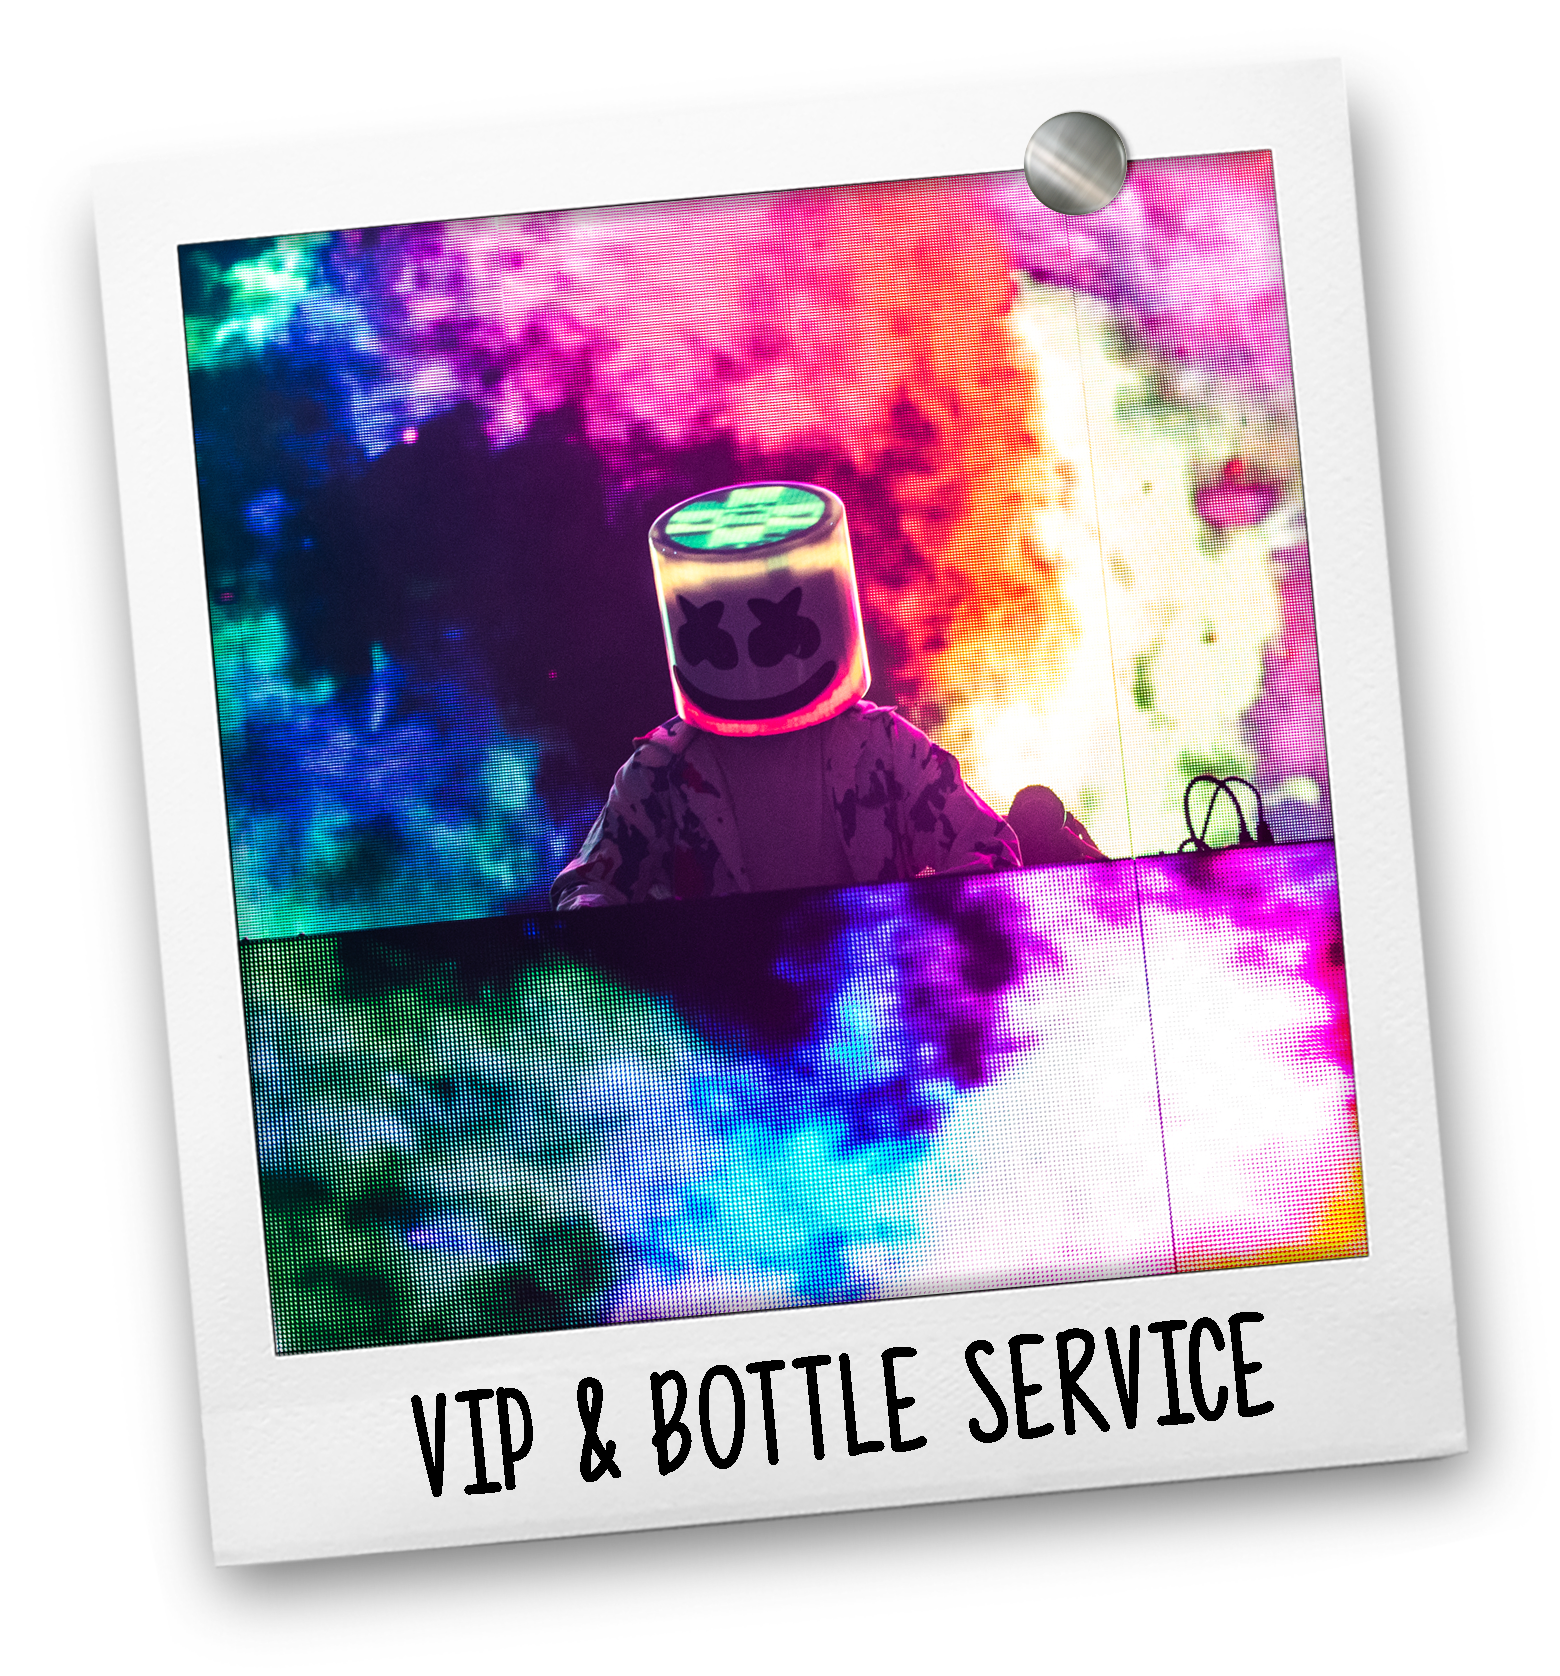 polaroid-bottle-service-VIP-2019.png